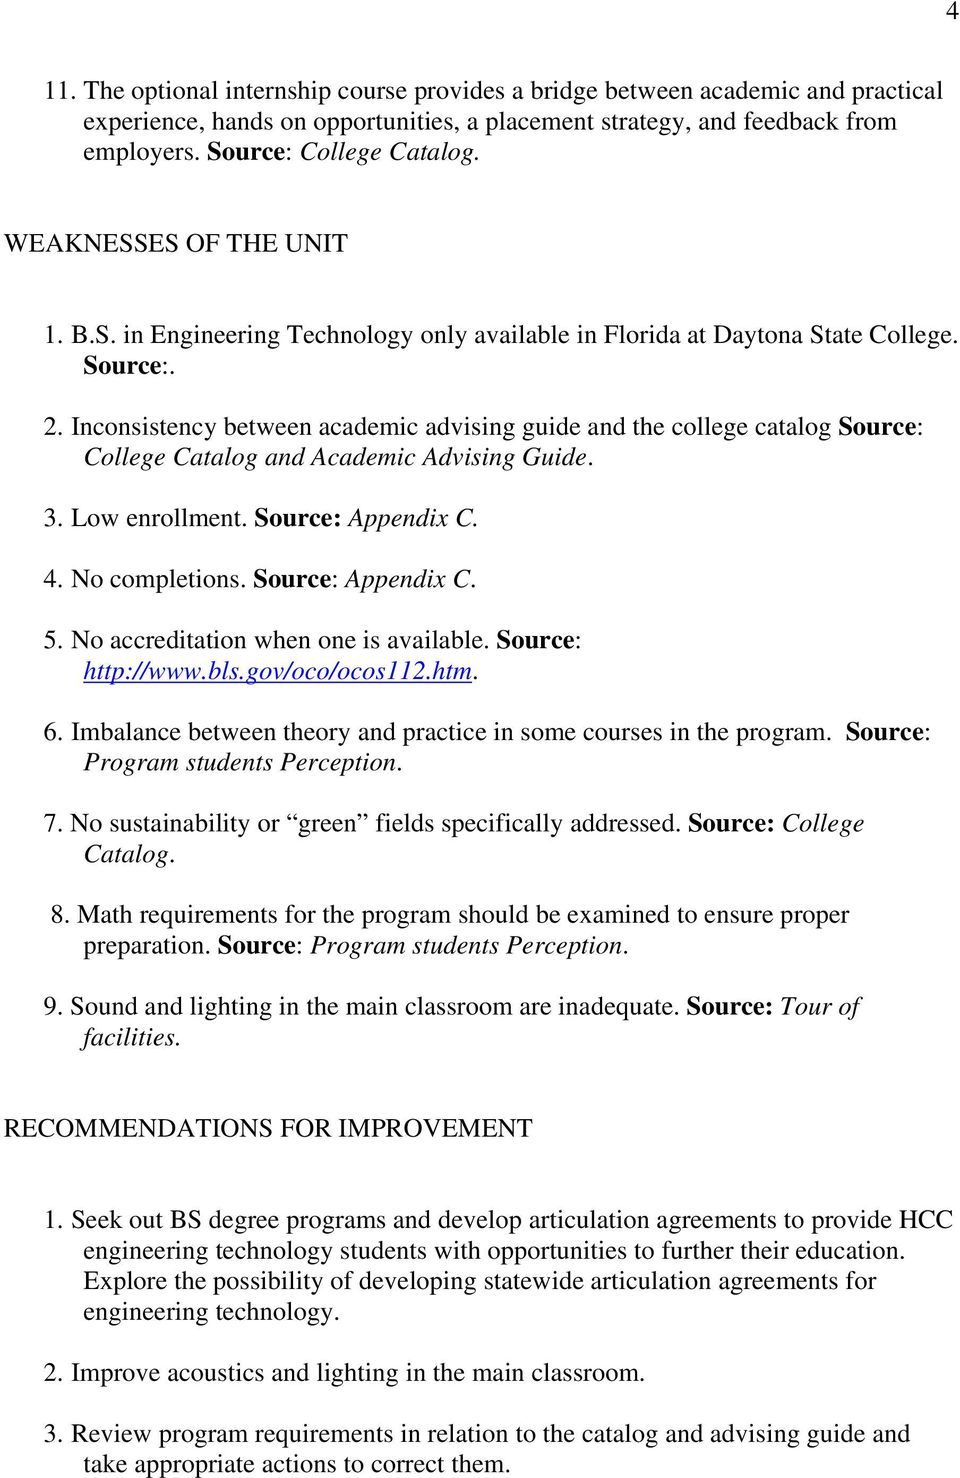 Inconsistency between academic advising guide and the college catalog Source: College Catalog and Academic Advising Guide. 3. Low enrollment. Source: Appendix C. 4. No completions. Source: Appendix C. 5.